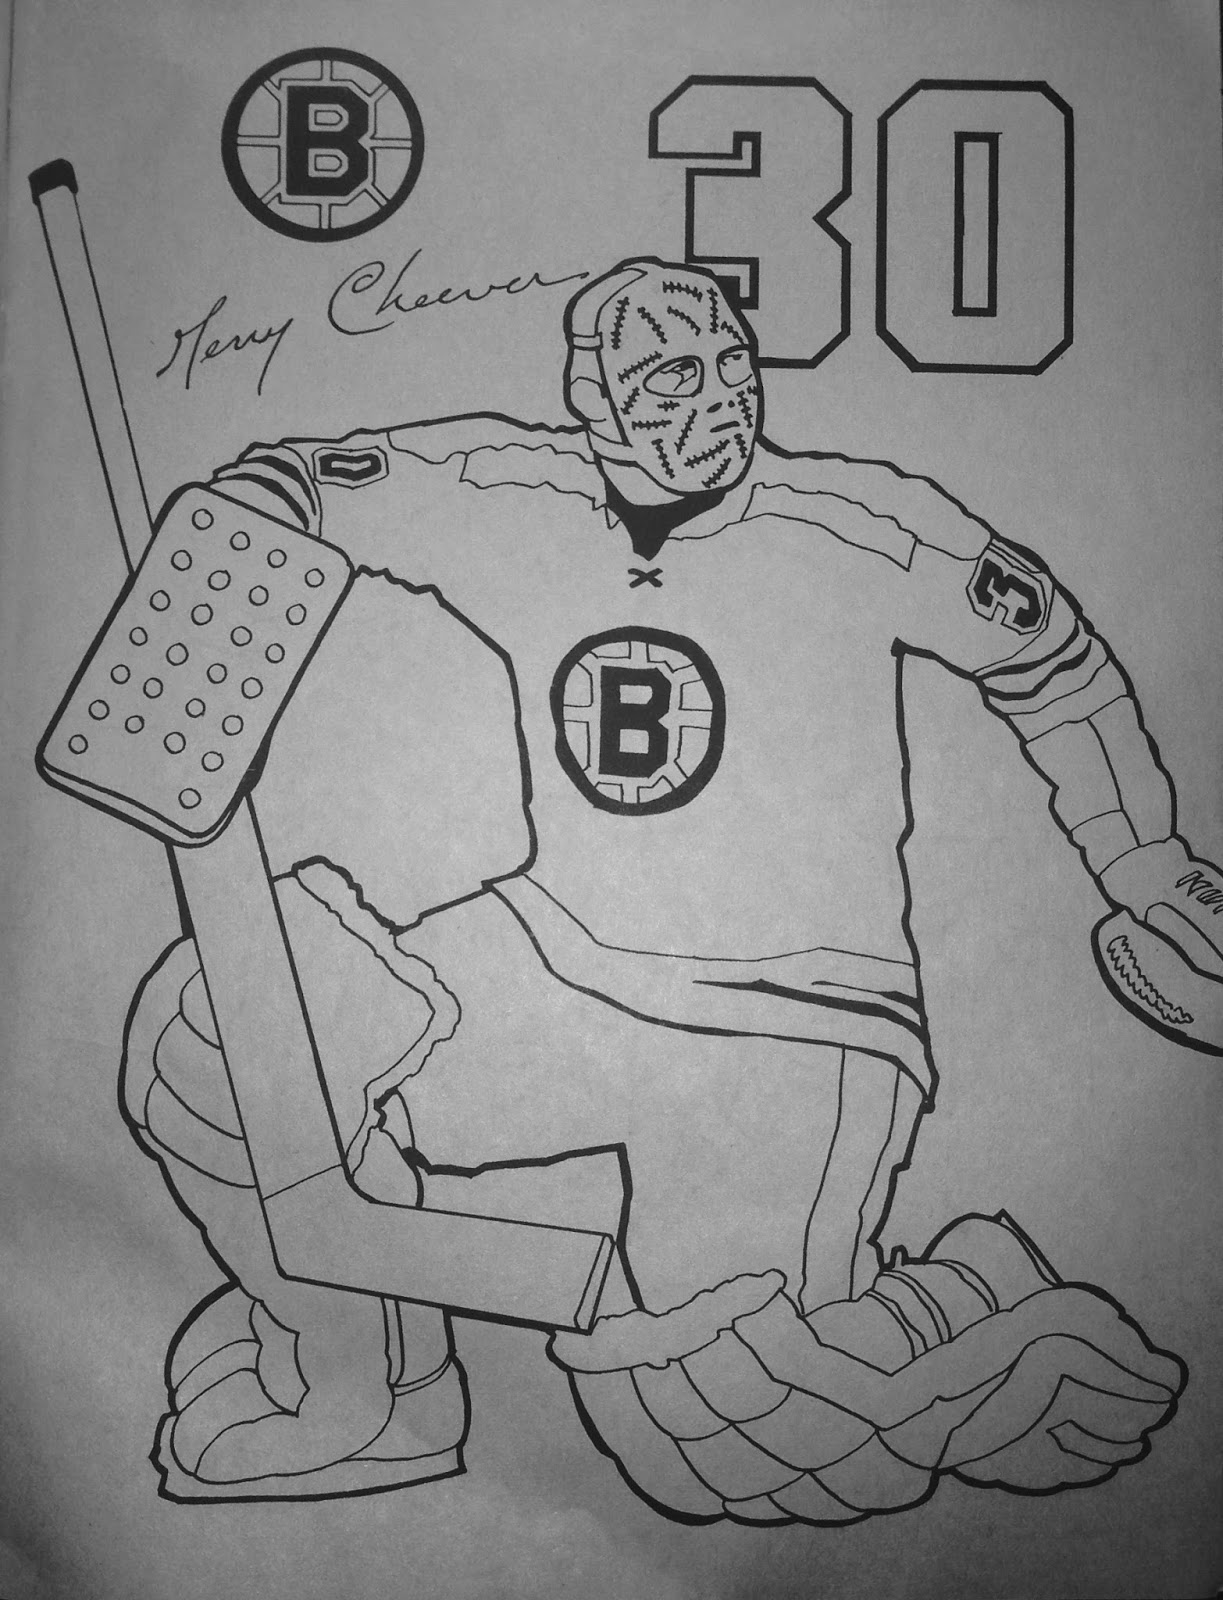 boston bruins coloring pictures nitzy39s hockey den boston bruins 1972 coloring book coloring boston bruins pictures